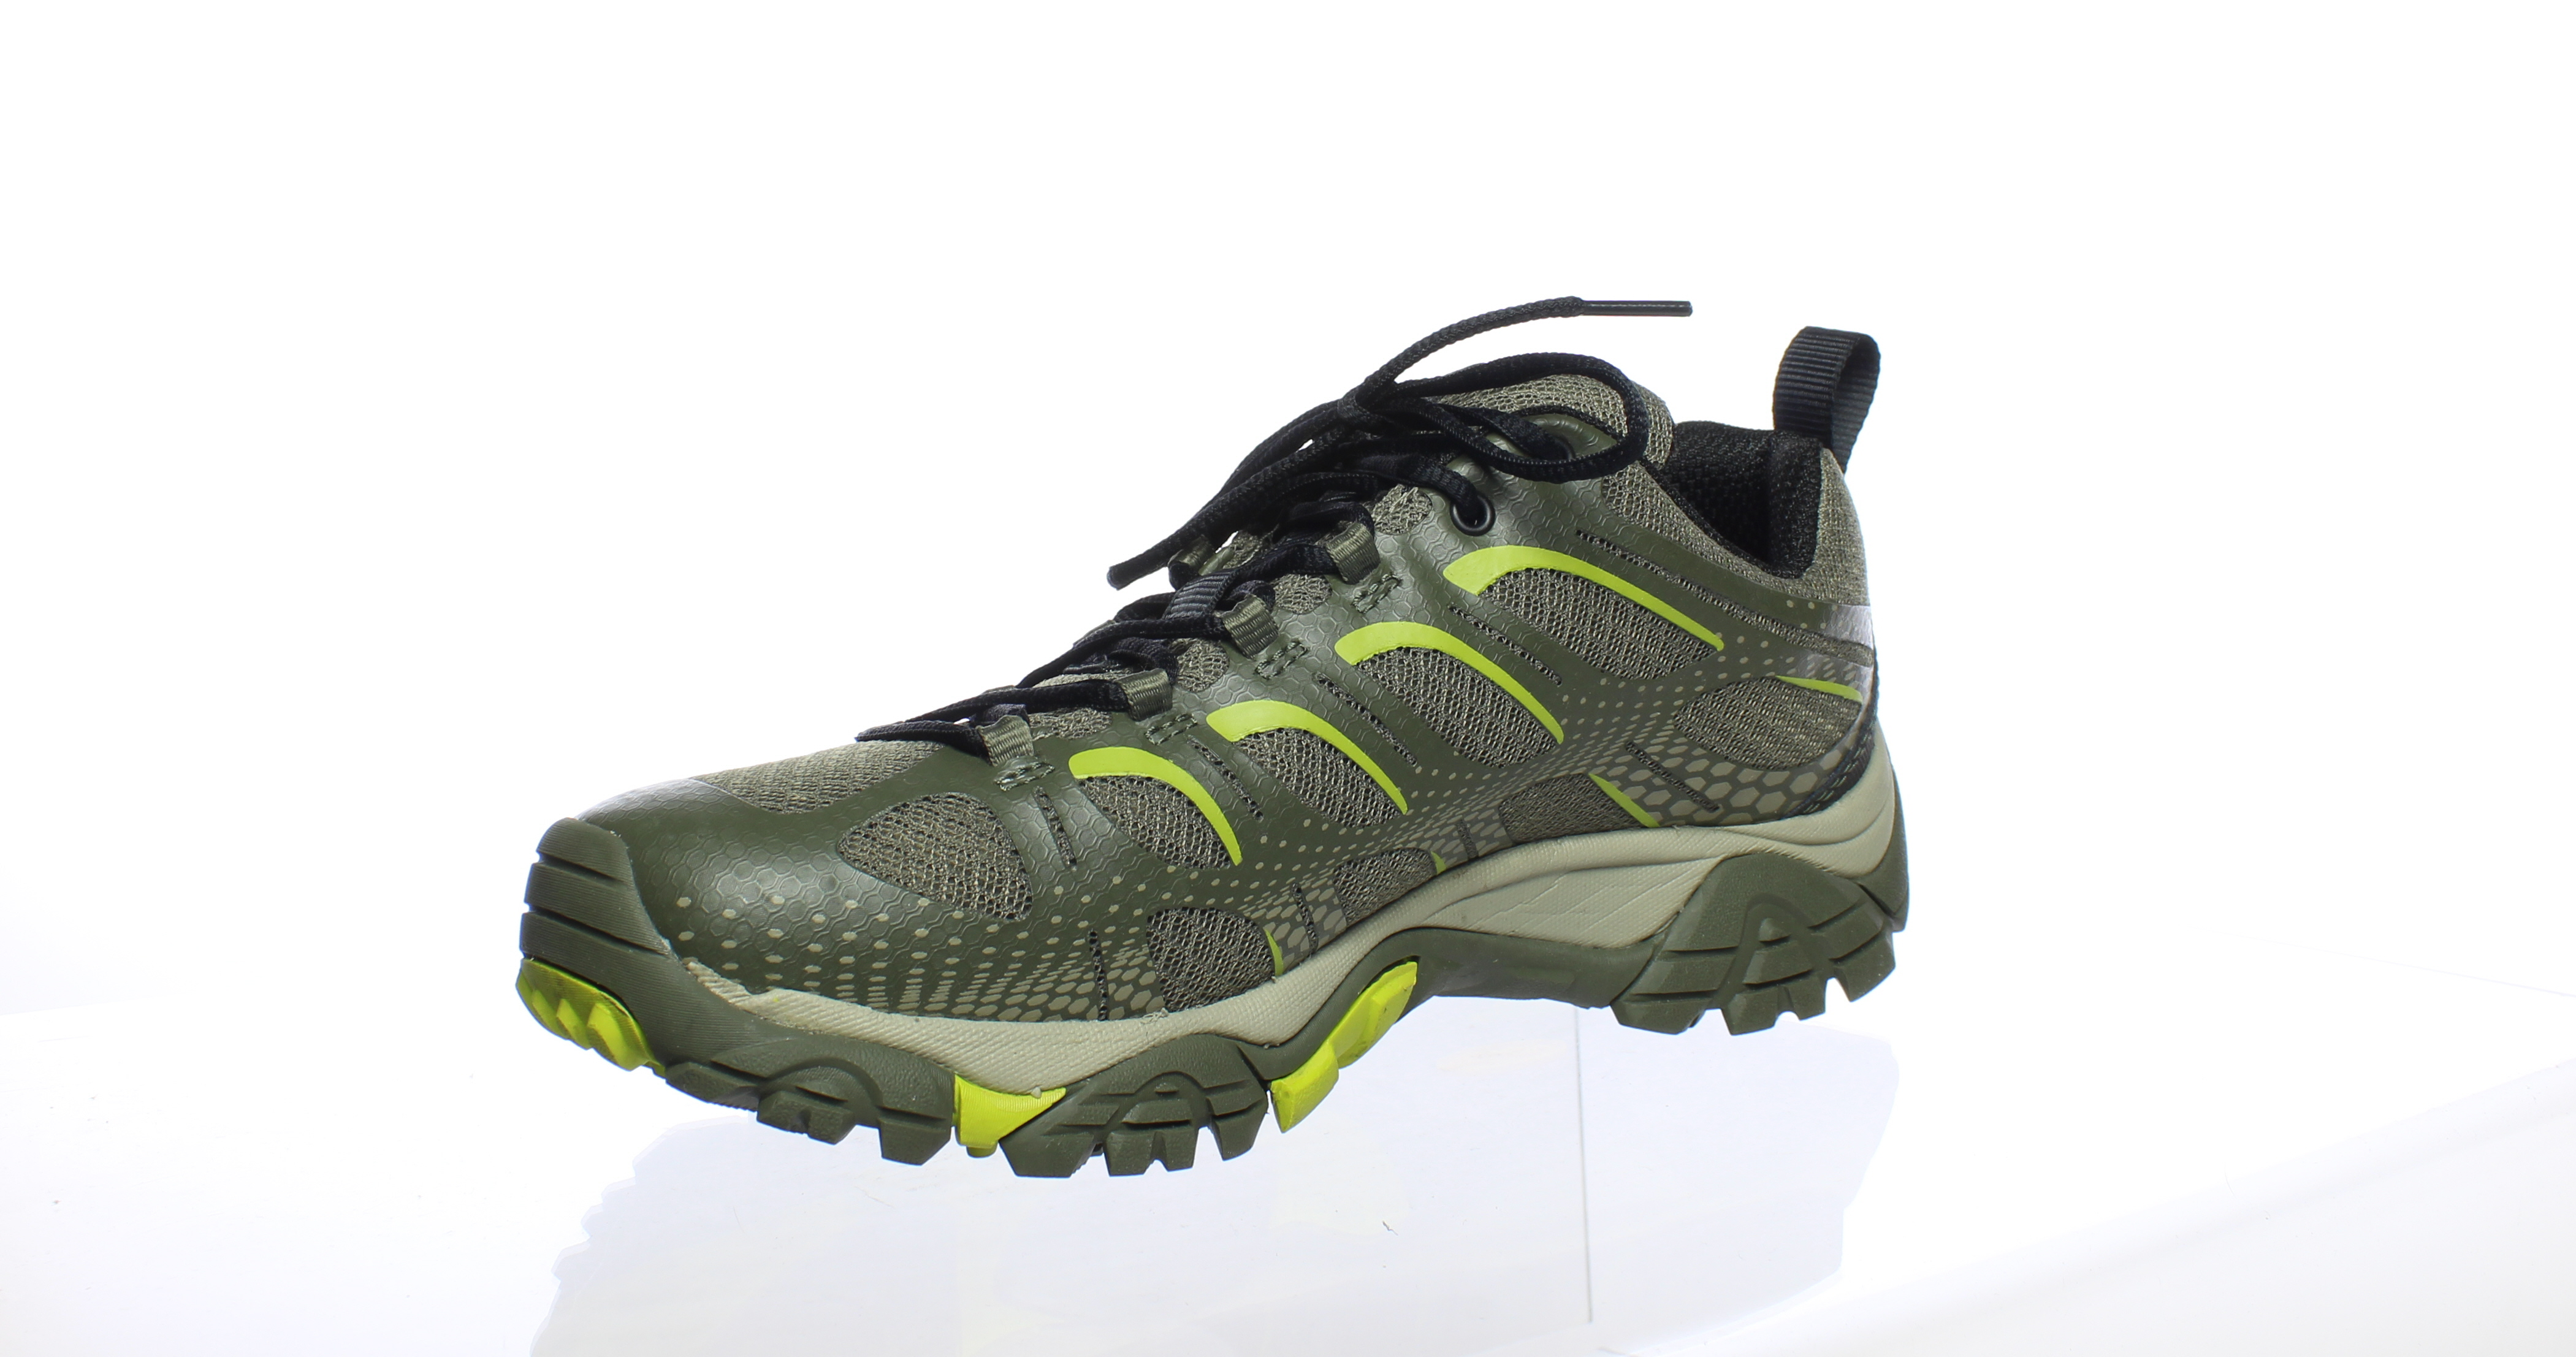 7037bd98f9c Merrell Mens Moab Edge Dusty Olive Hiking Shoes Size 8.5 (193039) 2 2 of 4  ...